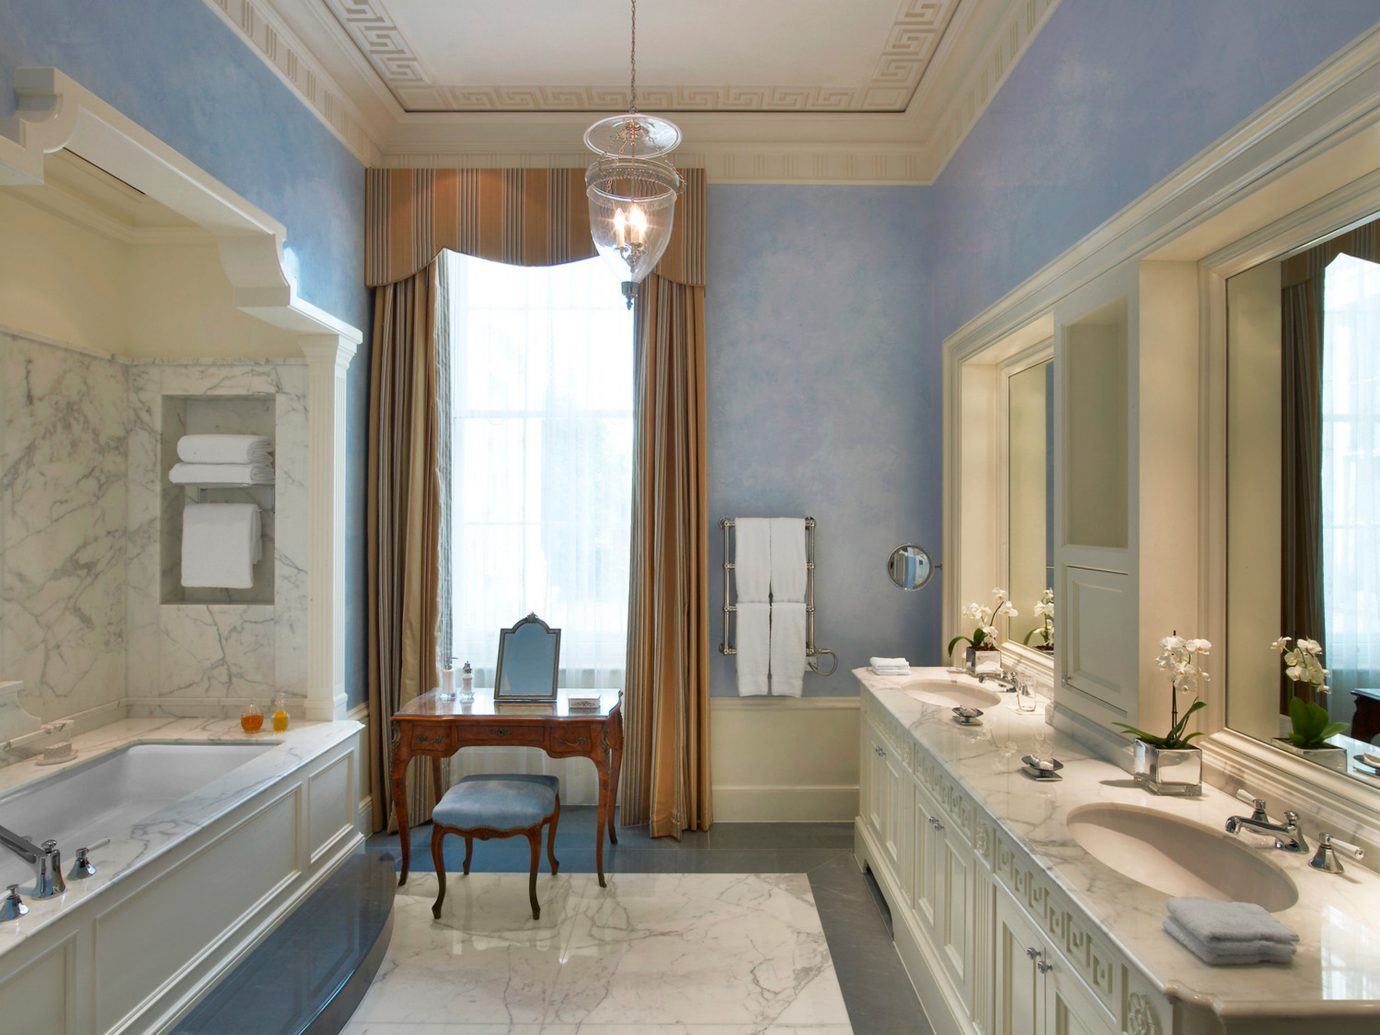 Bath Elegant Hotels London Lounge Luxury Travel indoor wall bathroom floor window sink room property mirror estate home interior design real estate mansion ceiling Suite daylighting counter living room tub bathtub